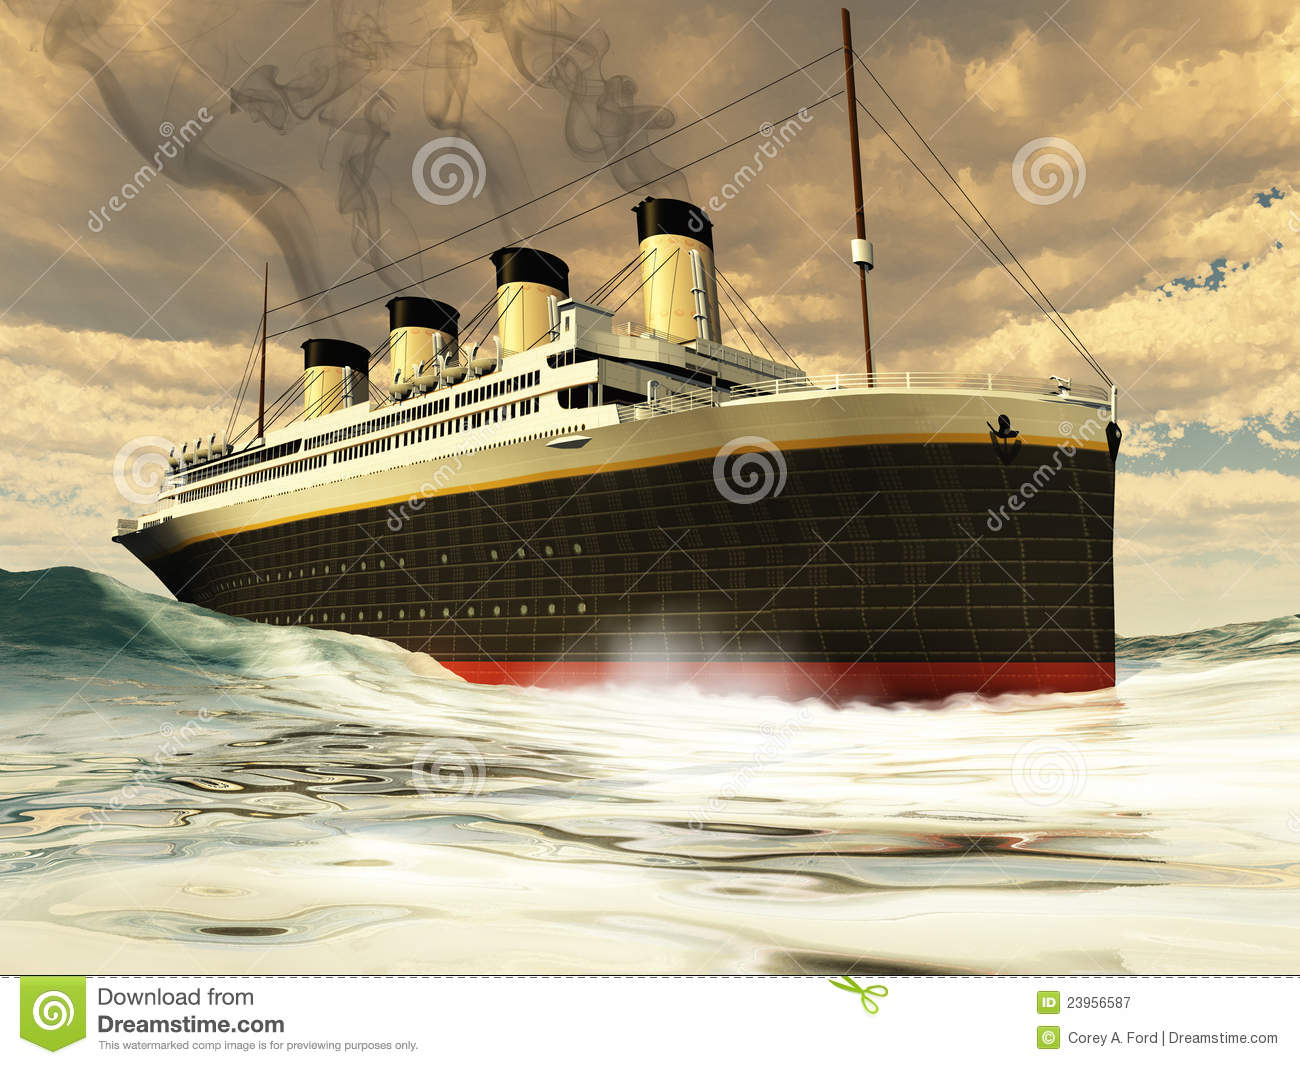 titanic ship images free - photo #19